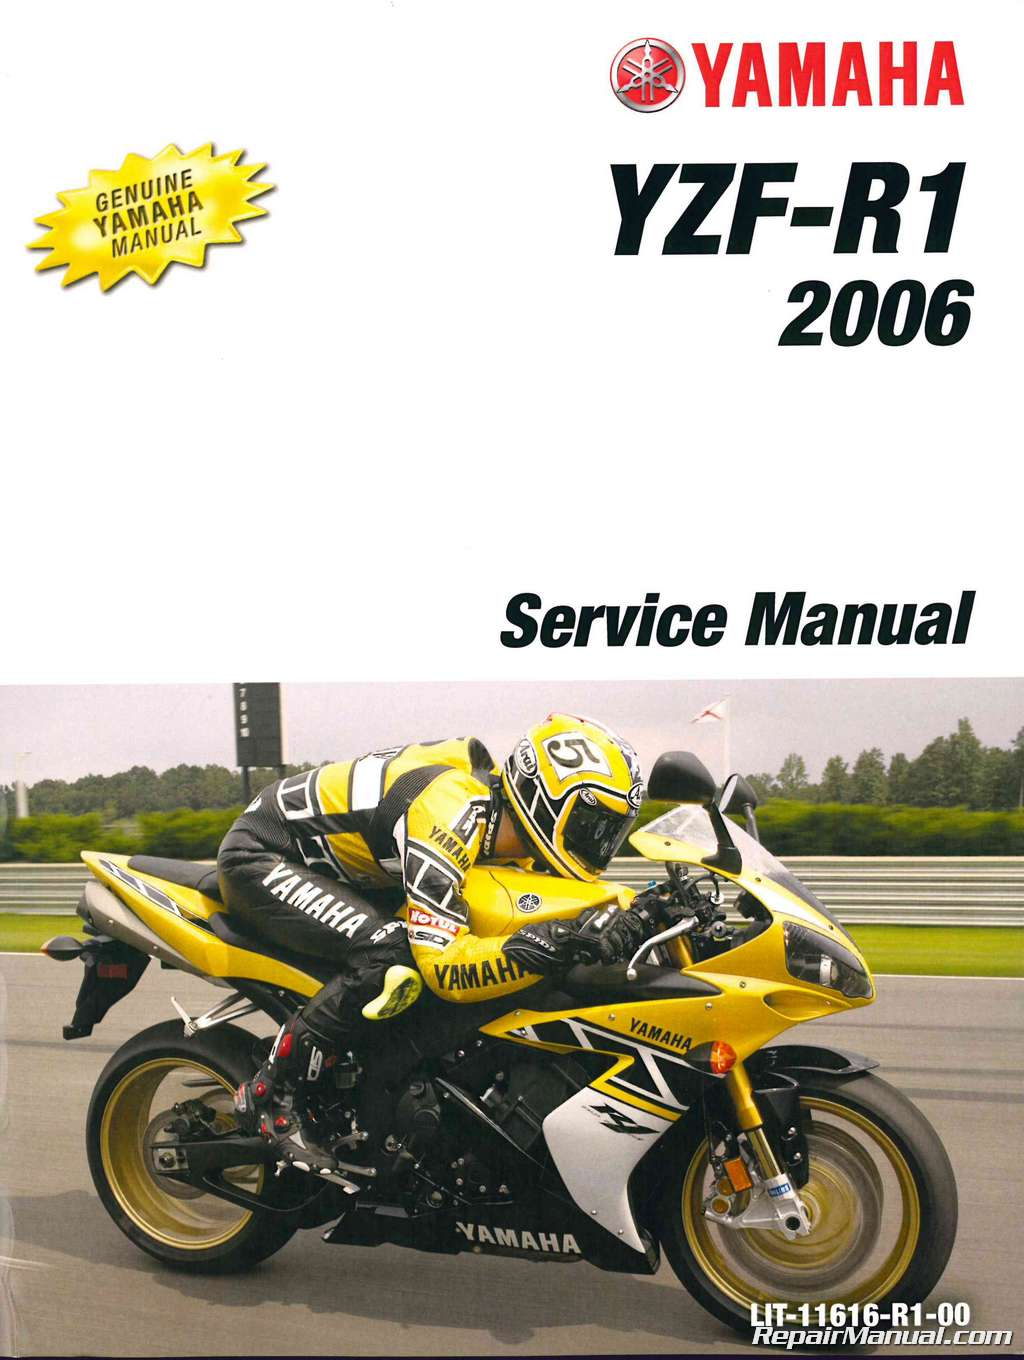 2006 yamaha yzf r1 motorcycle service manual for Yamaha ysp 5600 manual